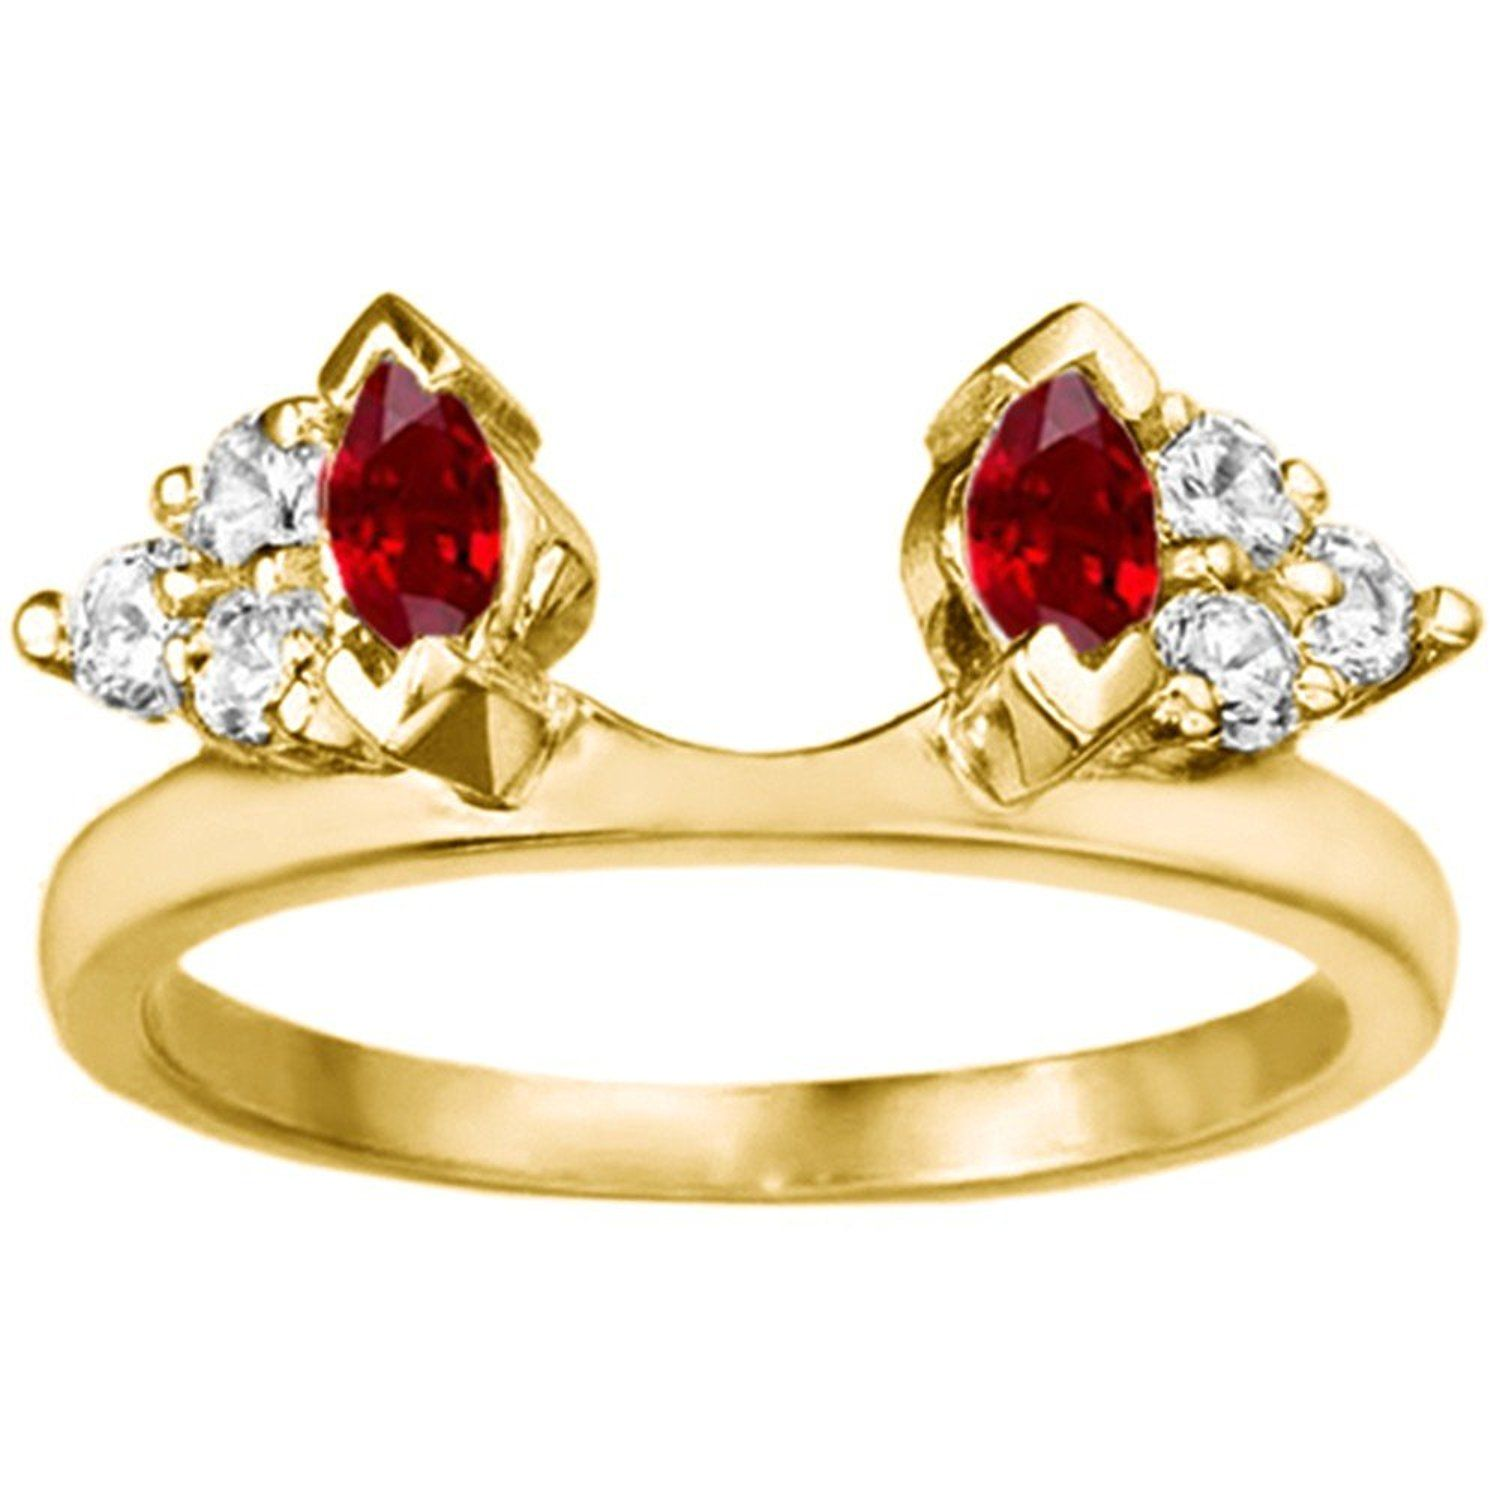 Diamond and Created Ruby Ring Wrap Enhancer set in